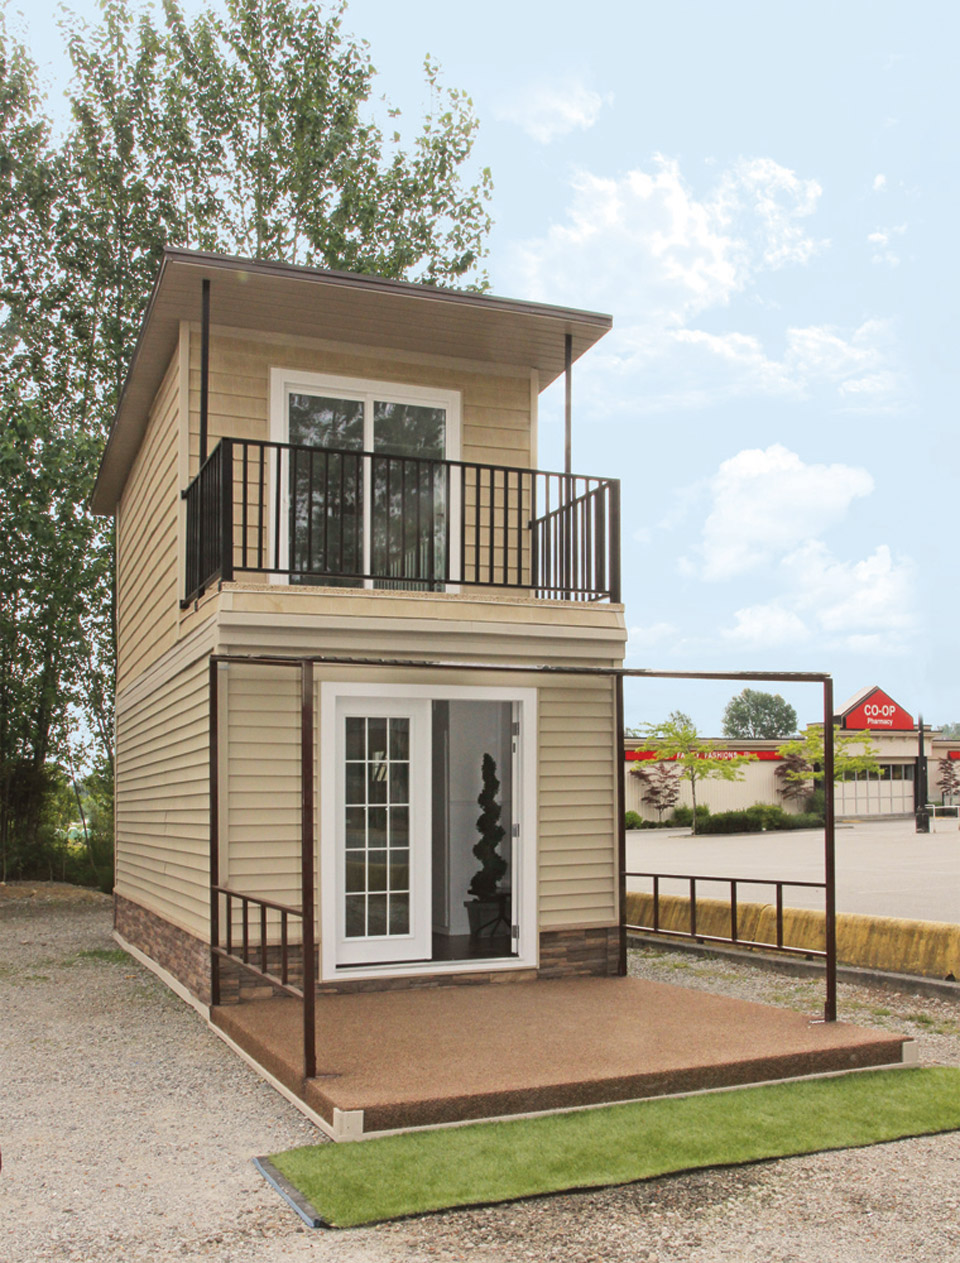 Small Two Story Homes Of The Eagle 1 A 350 Sq Ft 2 Story Steel Framed Micro Home